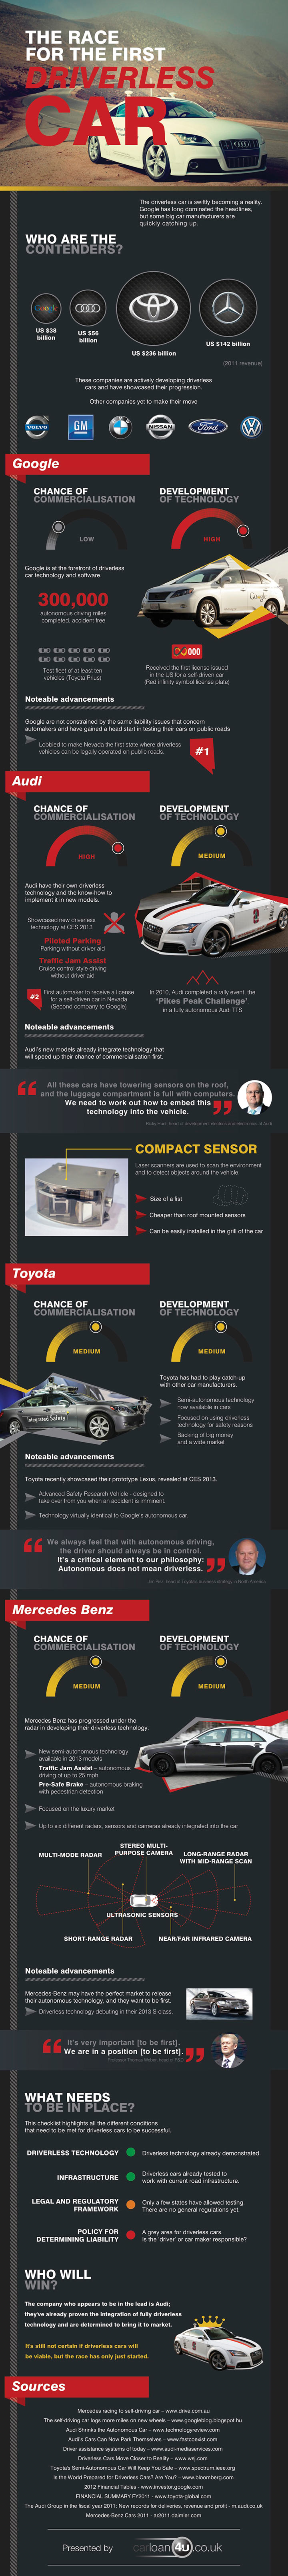 Driverless Cars Coming-Infographic